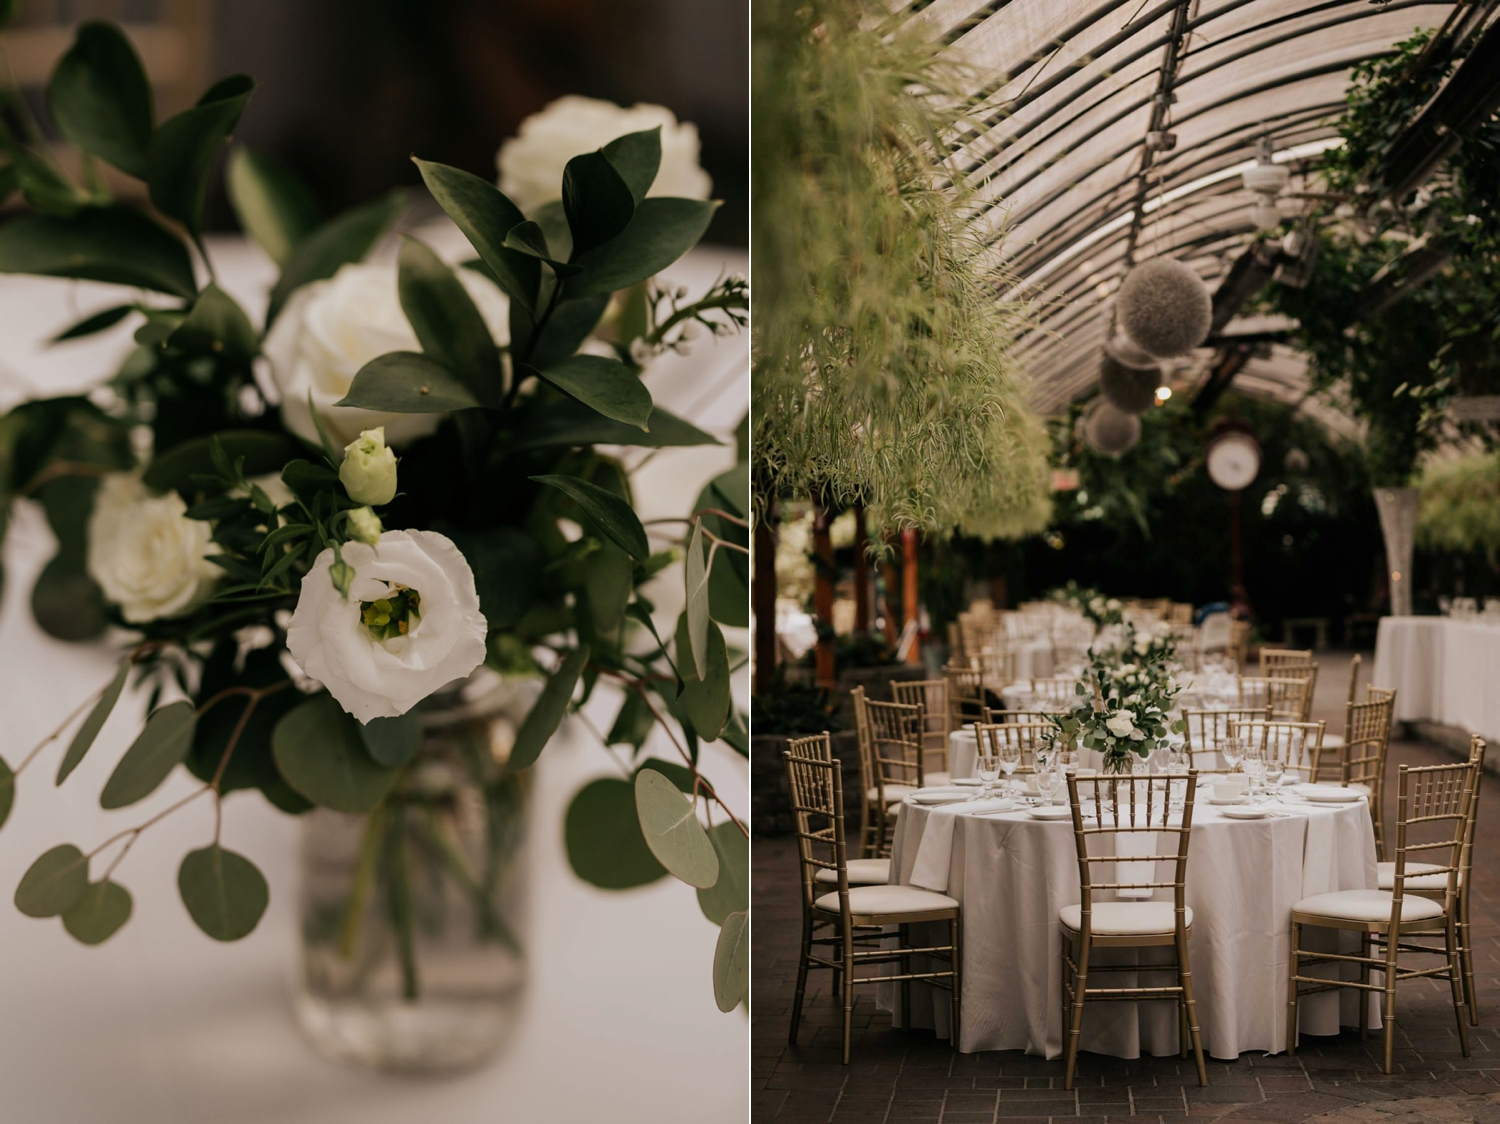 Madsen's Greenhouse wedding venue in Newmarket in Toronto by candid and photojournalist wedding photographer